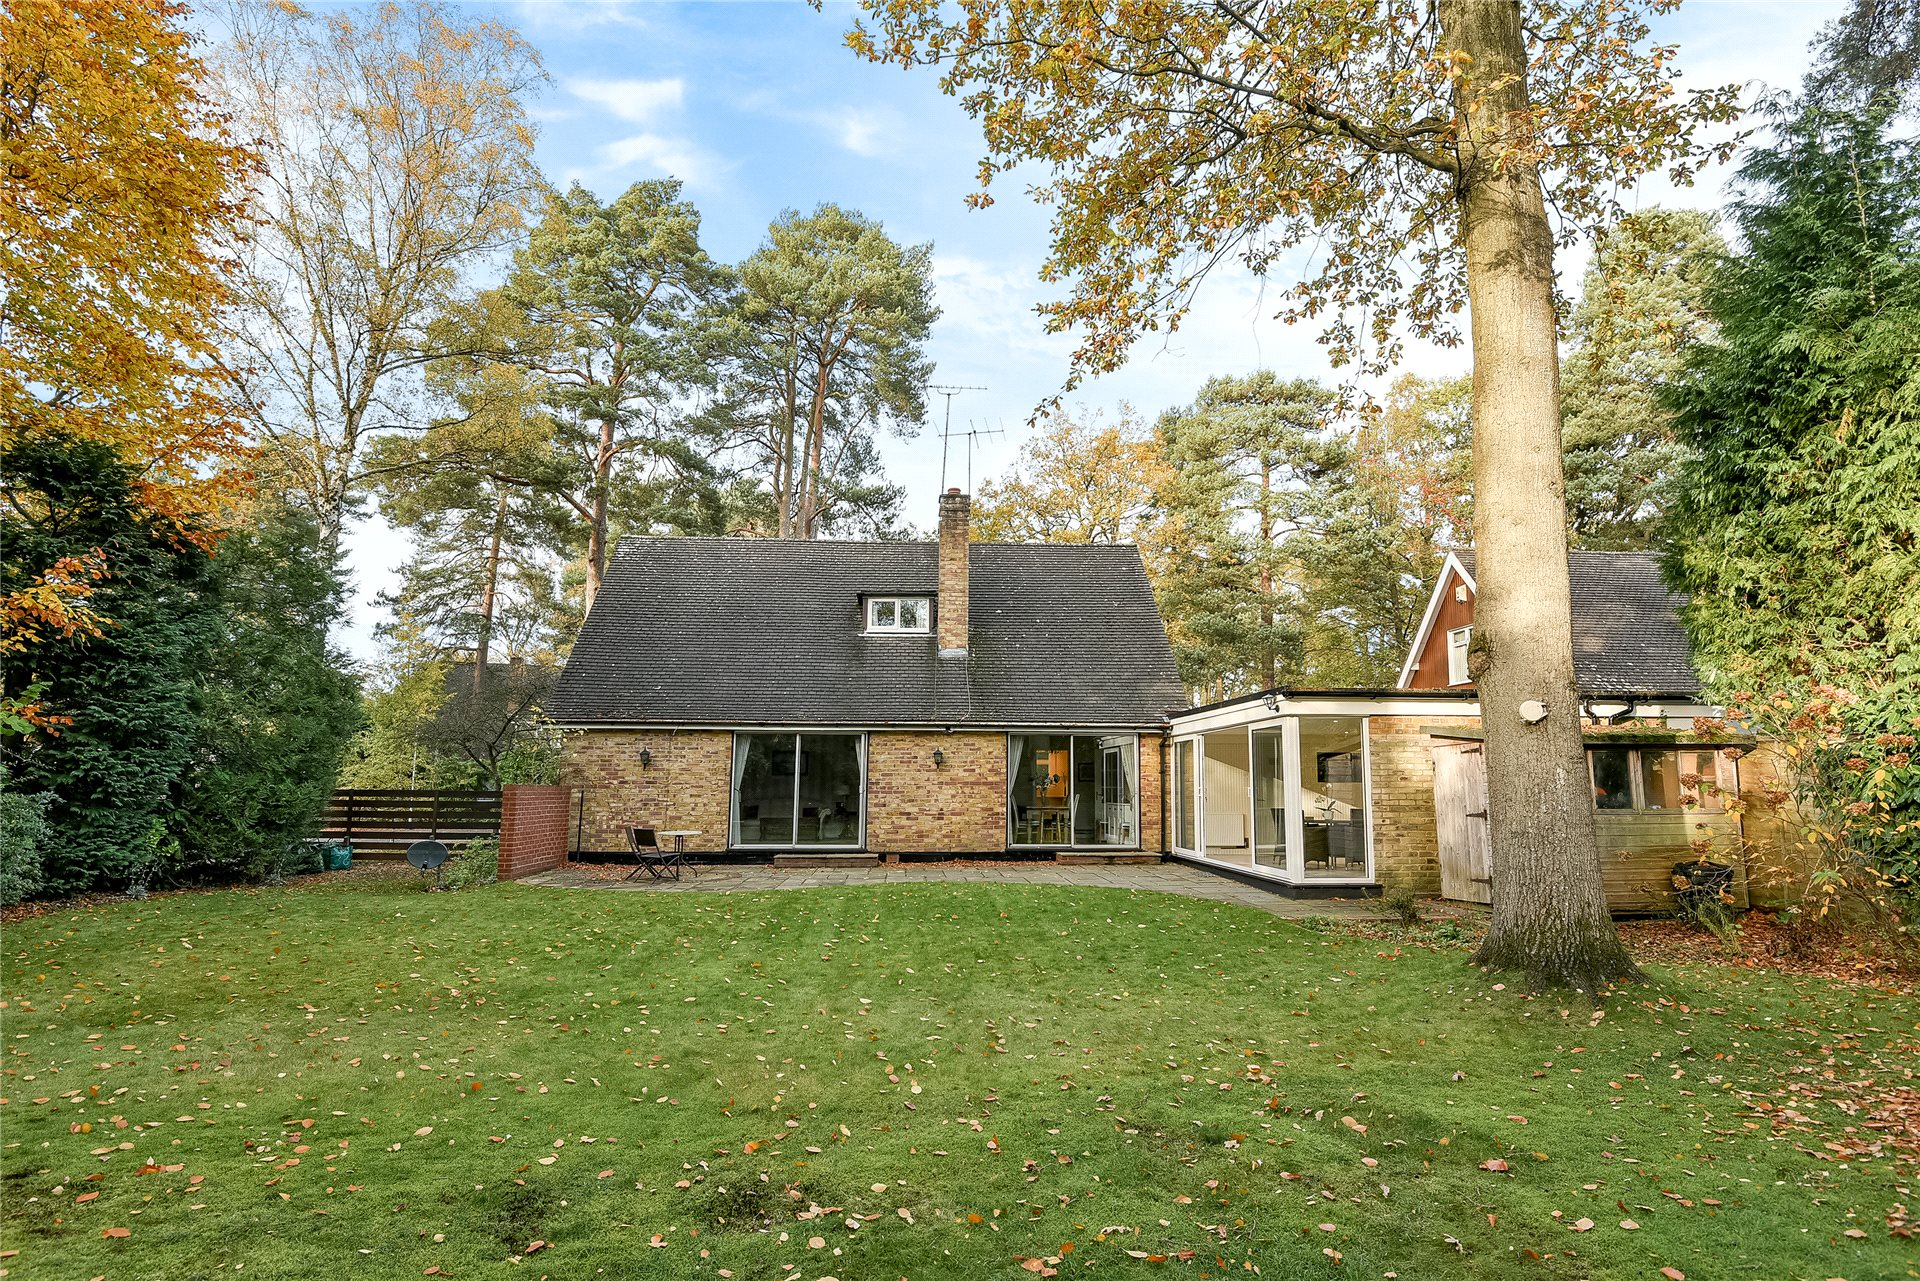 4 Bedrooms Detached House for sale in Edgcumbe Park Drive, Crowthorne, Berkshire, RG45